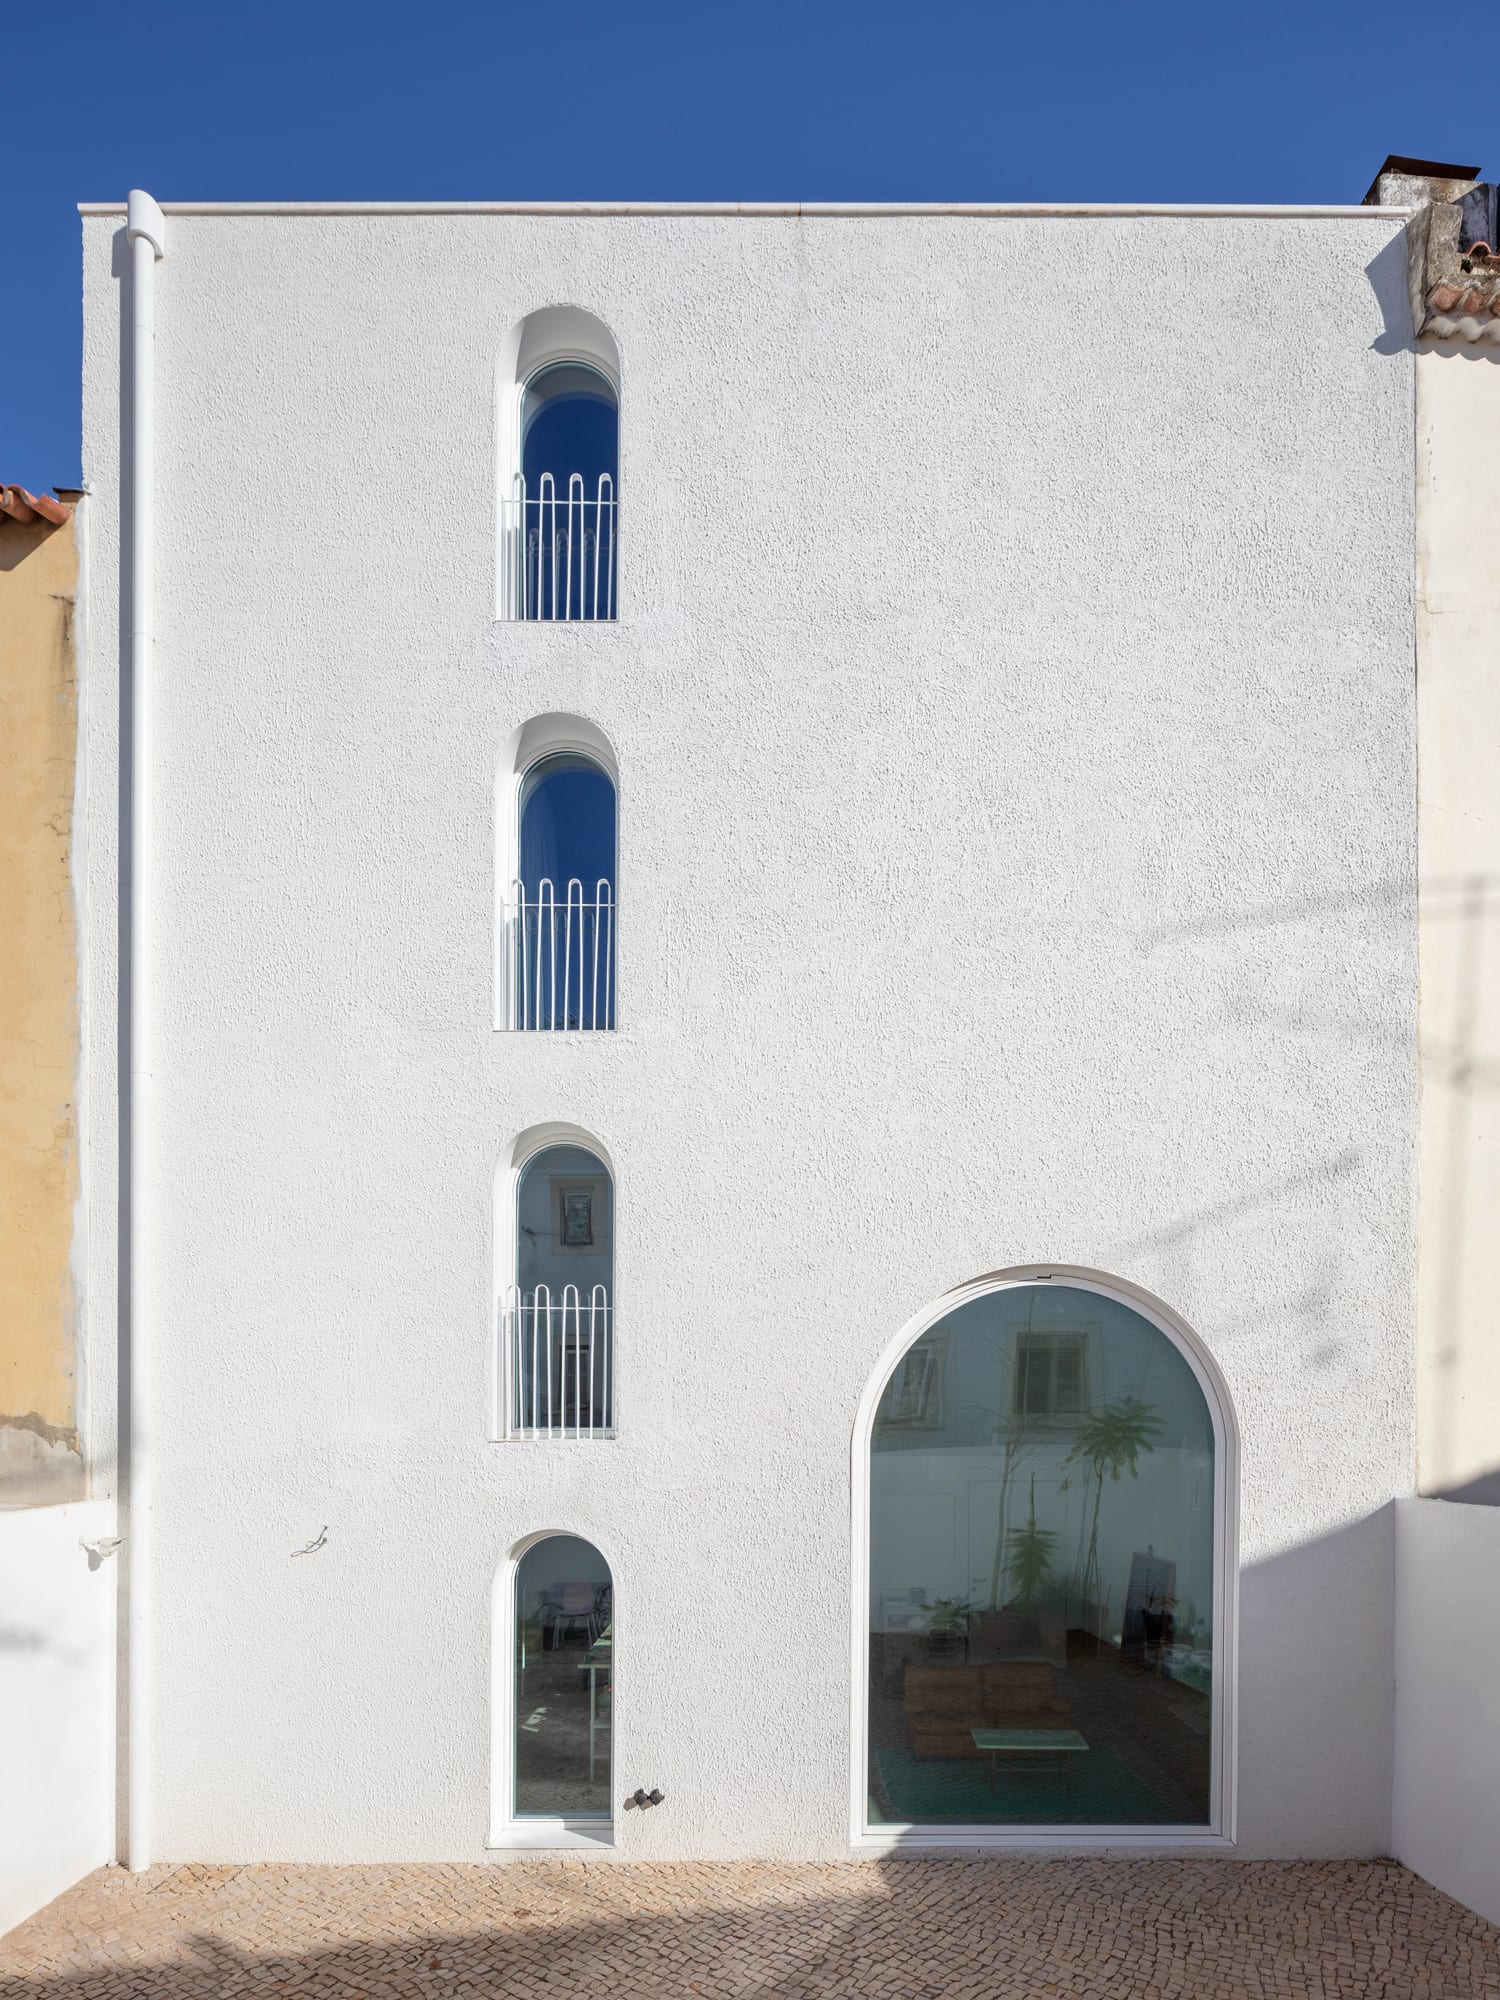 Dodged House in Lisbon, Portugal by Leopold Banchini + Daniel Zamarbide.